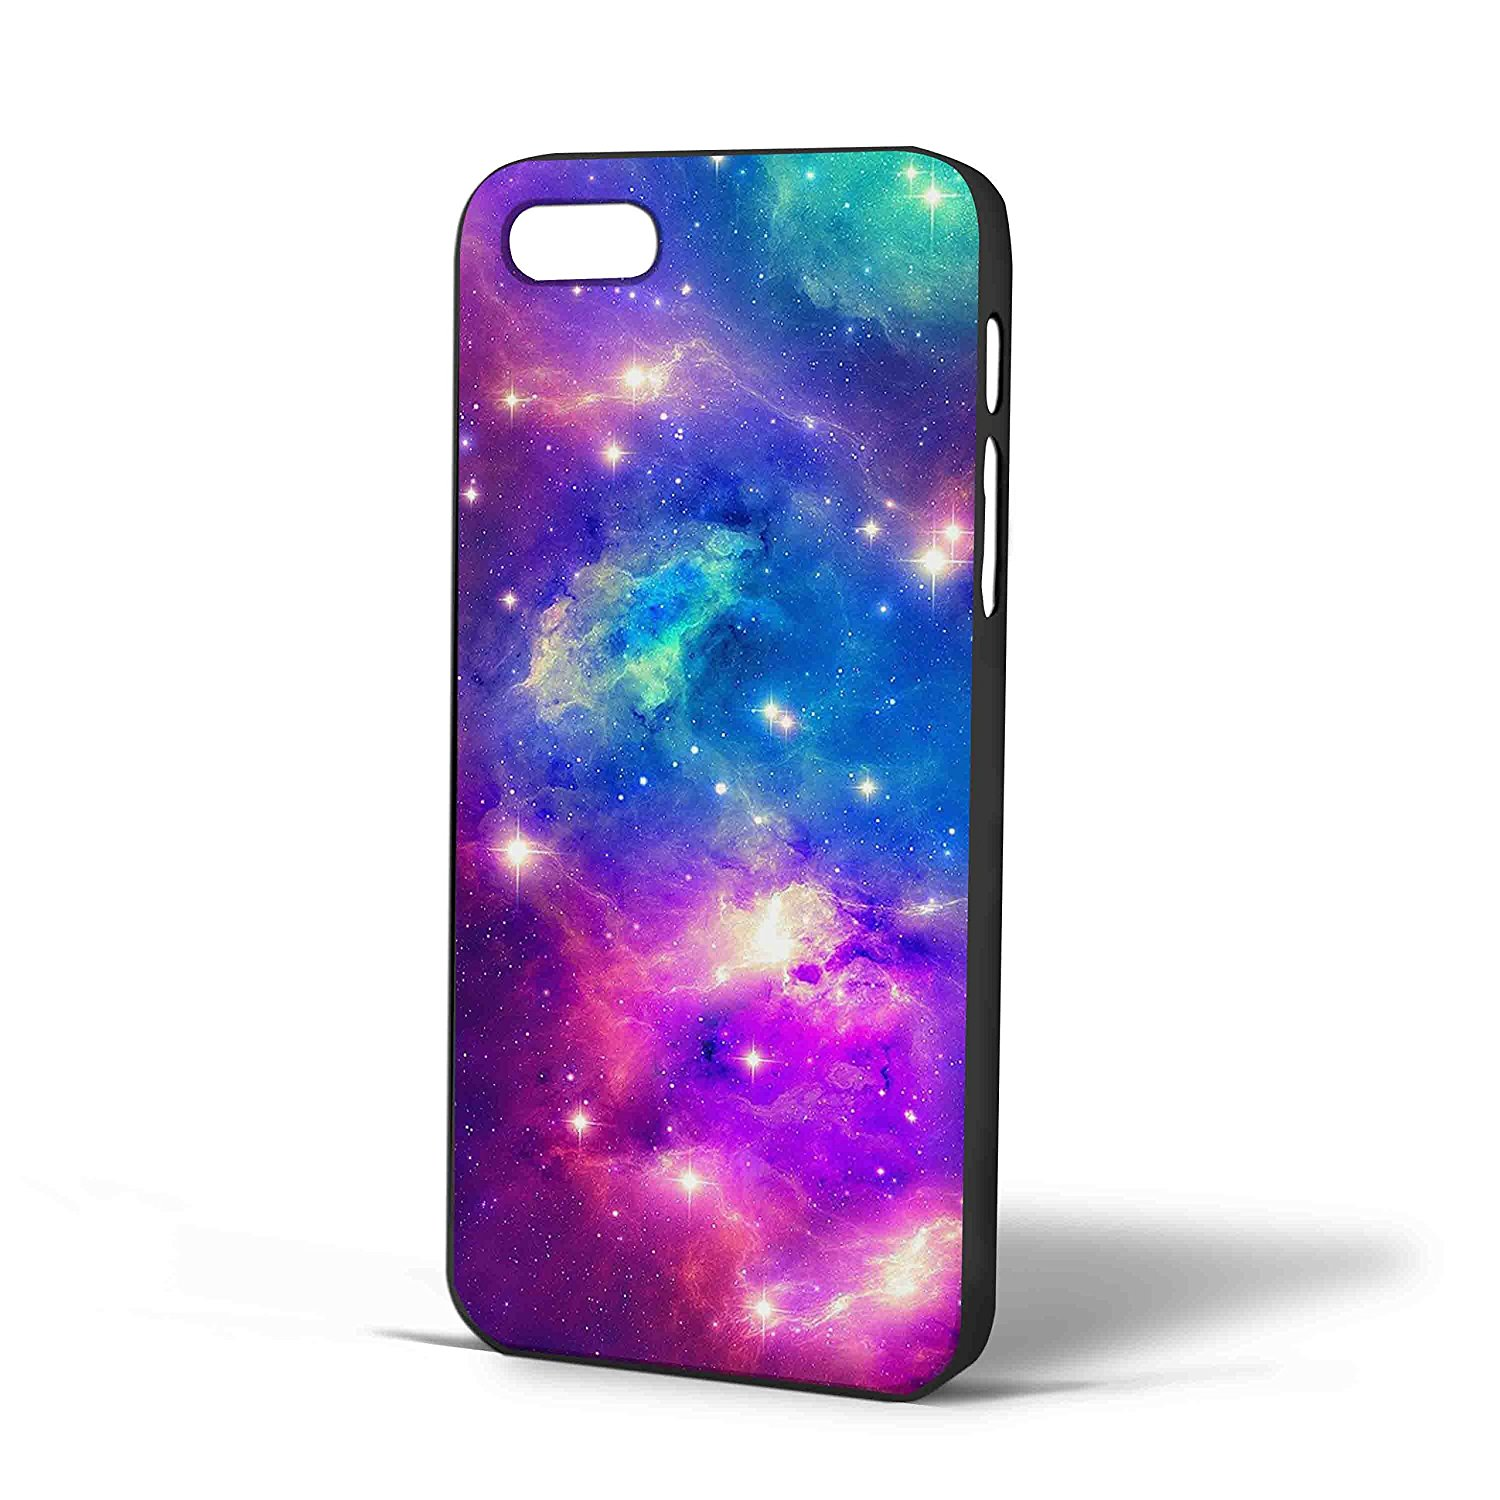 Ganma Generation Cute Blue Purple Blue Pink Galaxy Space Fantasy Case For iPhone Case (Case For iPhone 6 Plus Black)